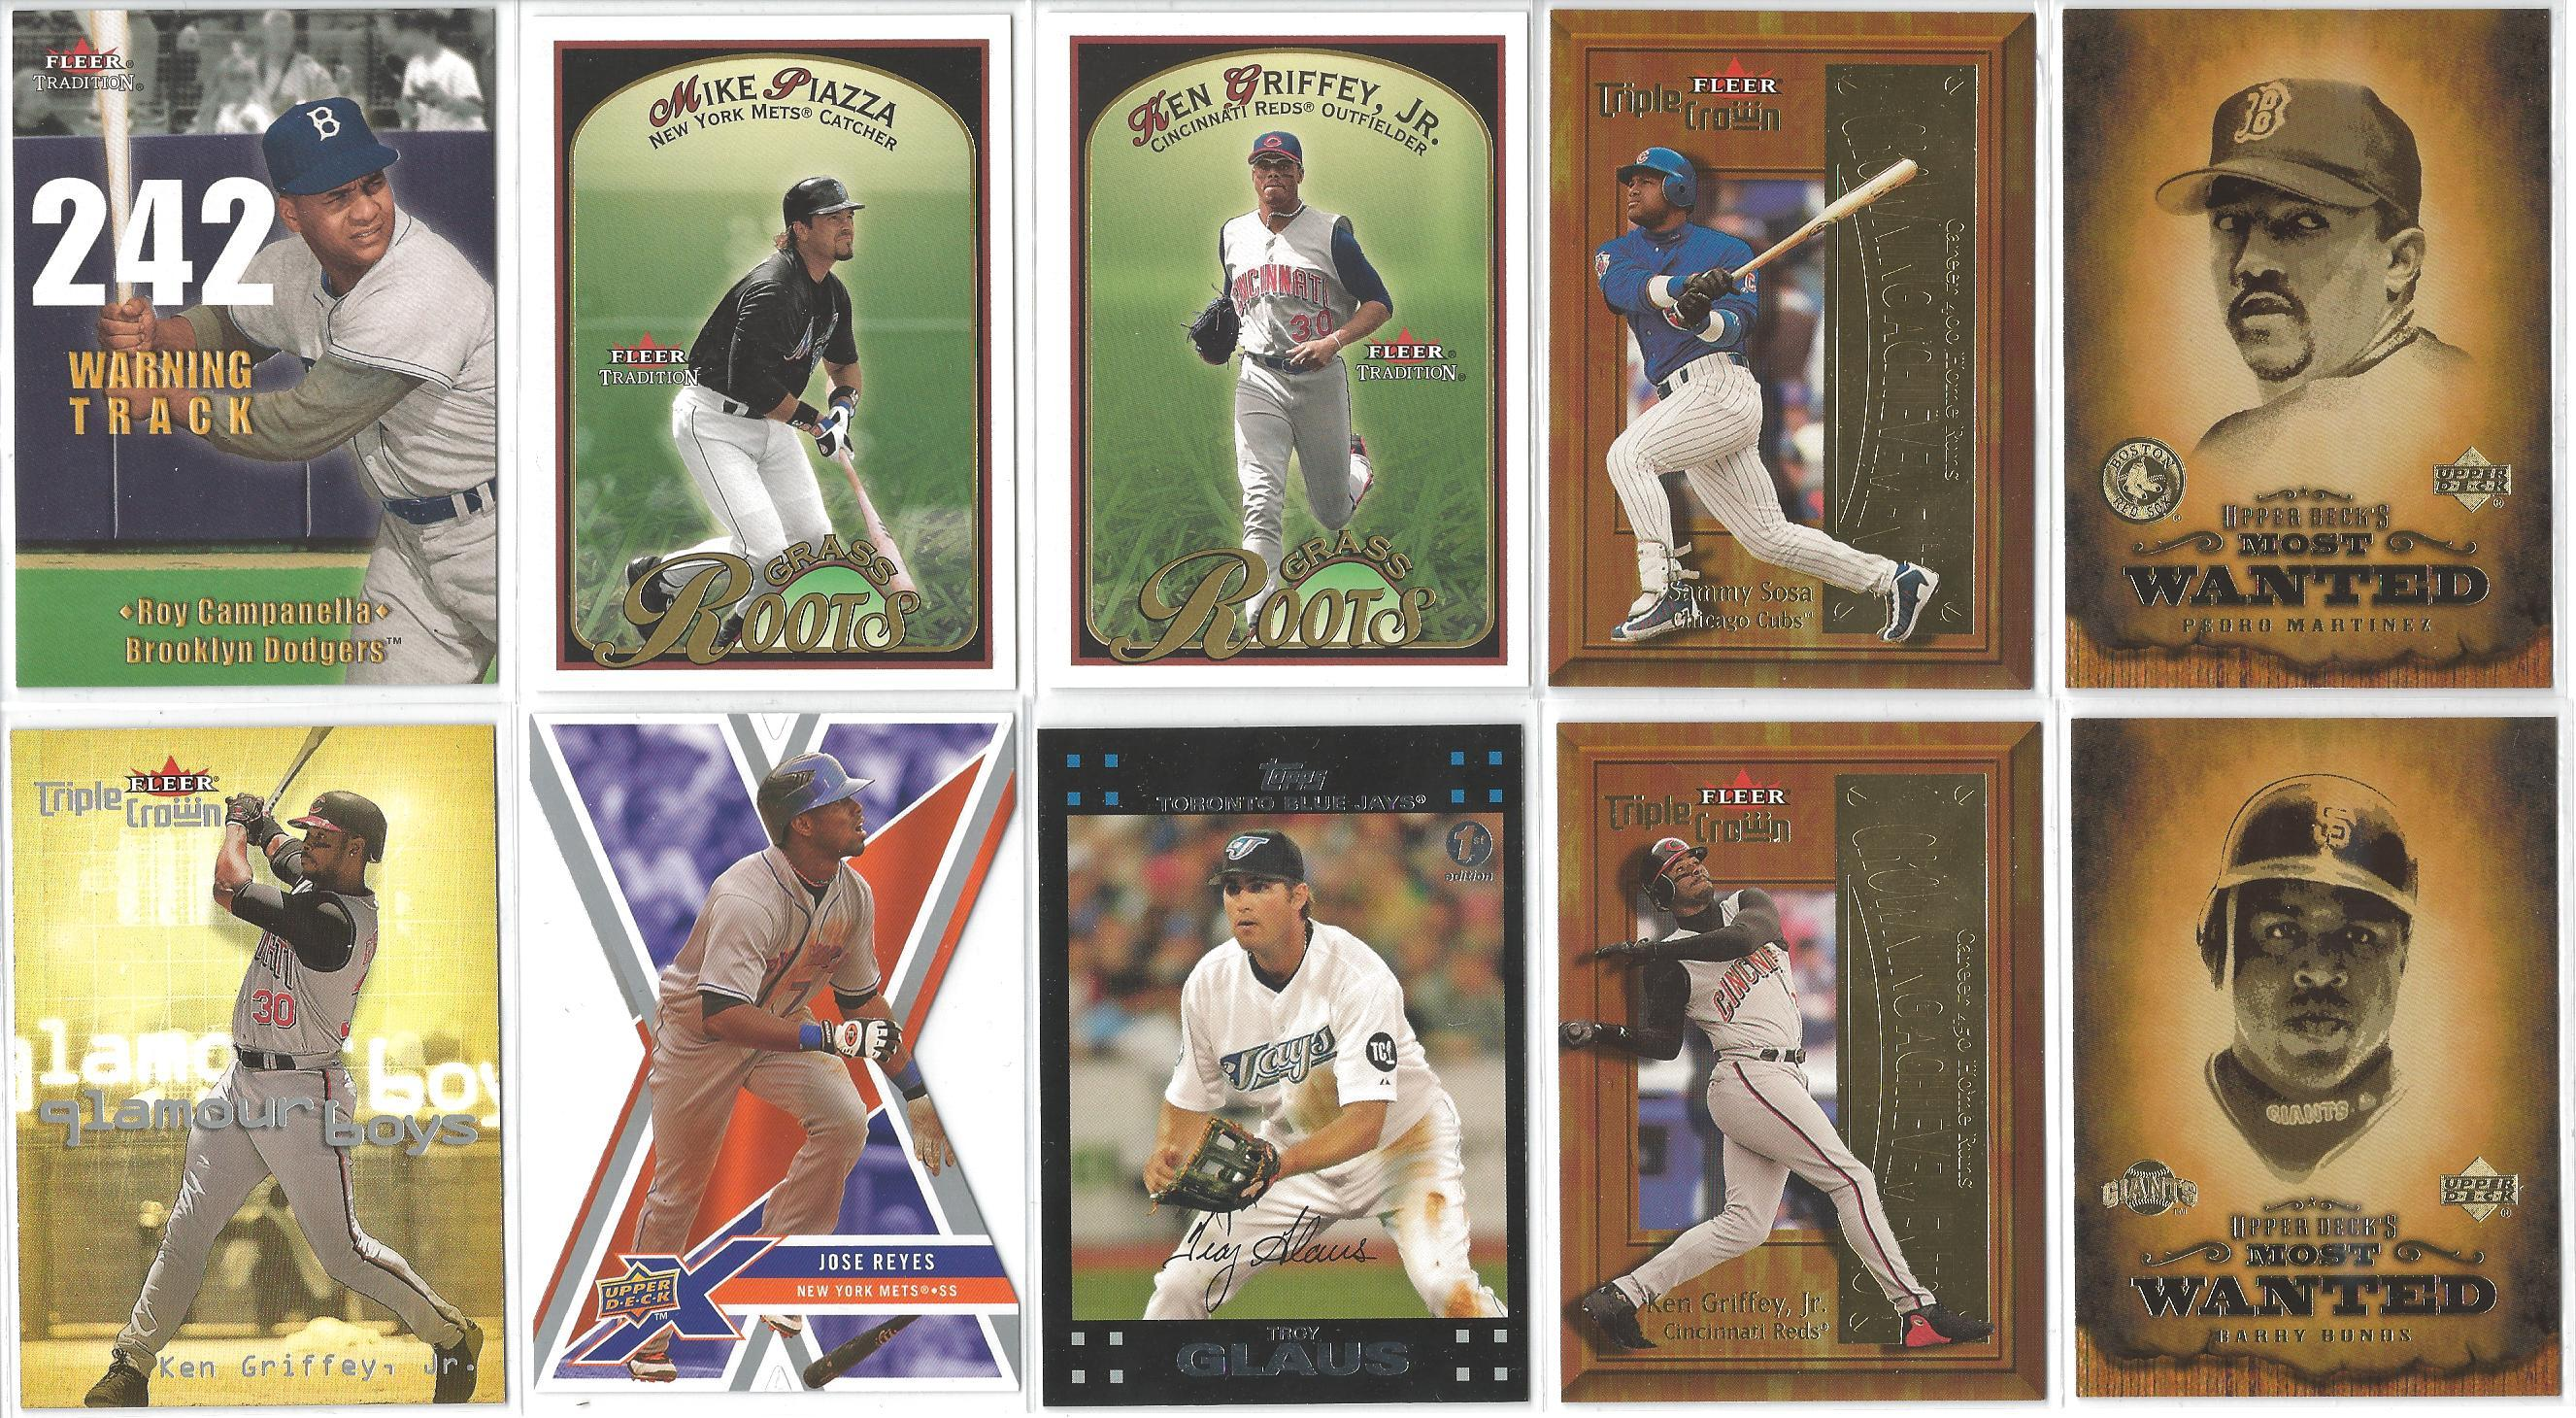 blowout cards forums view single post for autos jerseys 2001 fleer tradition warning track roy campanella 2001 fleer tradition grass roots mike piazza 2001 fleer tradition grass roots ken griffey jr